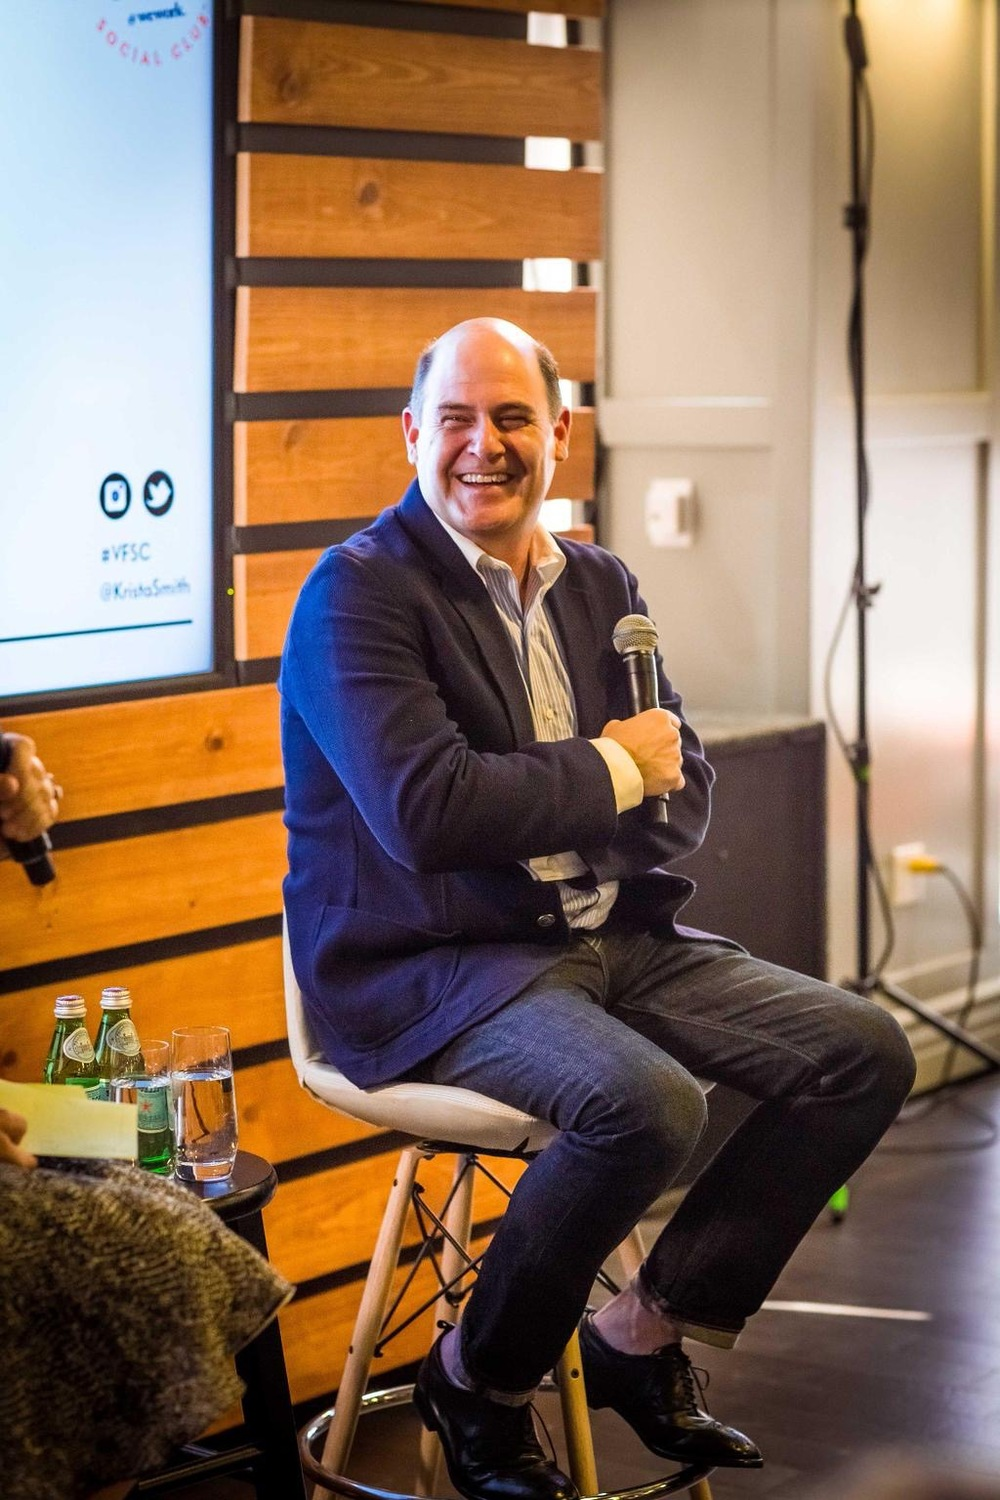 Matthew Weiner, Creator of Mad Men - Photo by @VFAGENDA